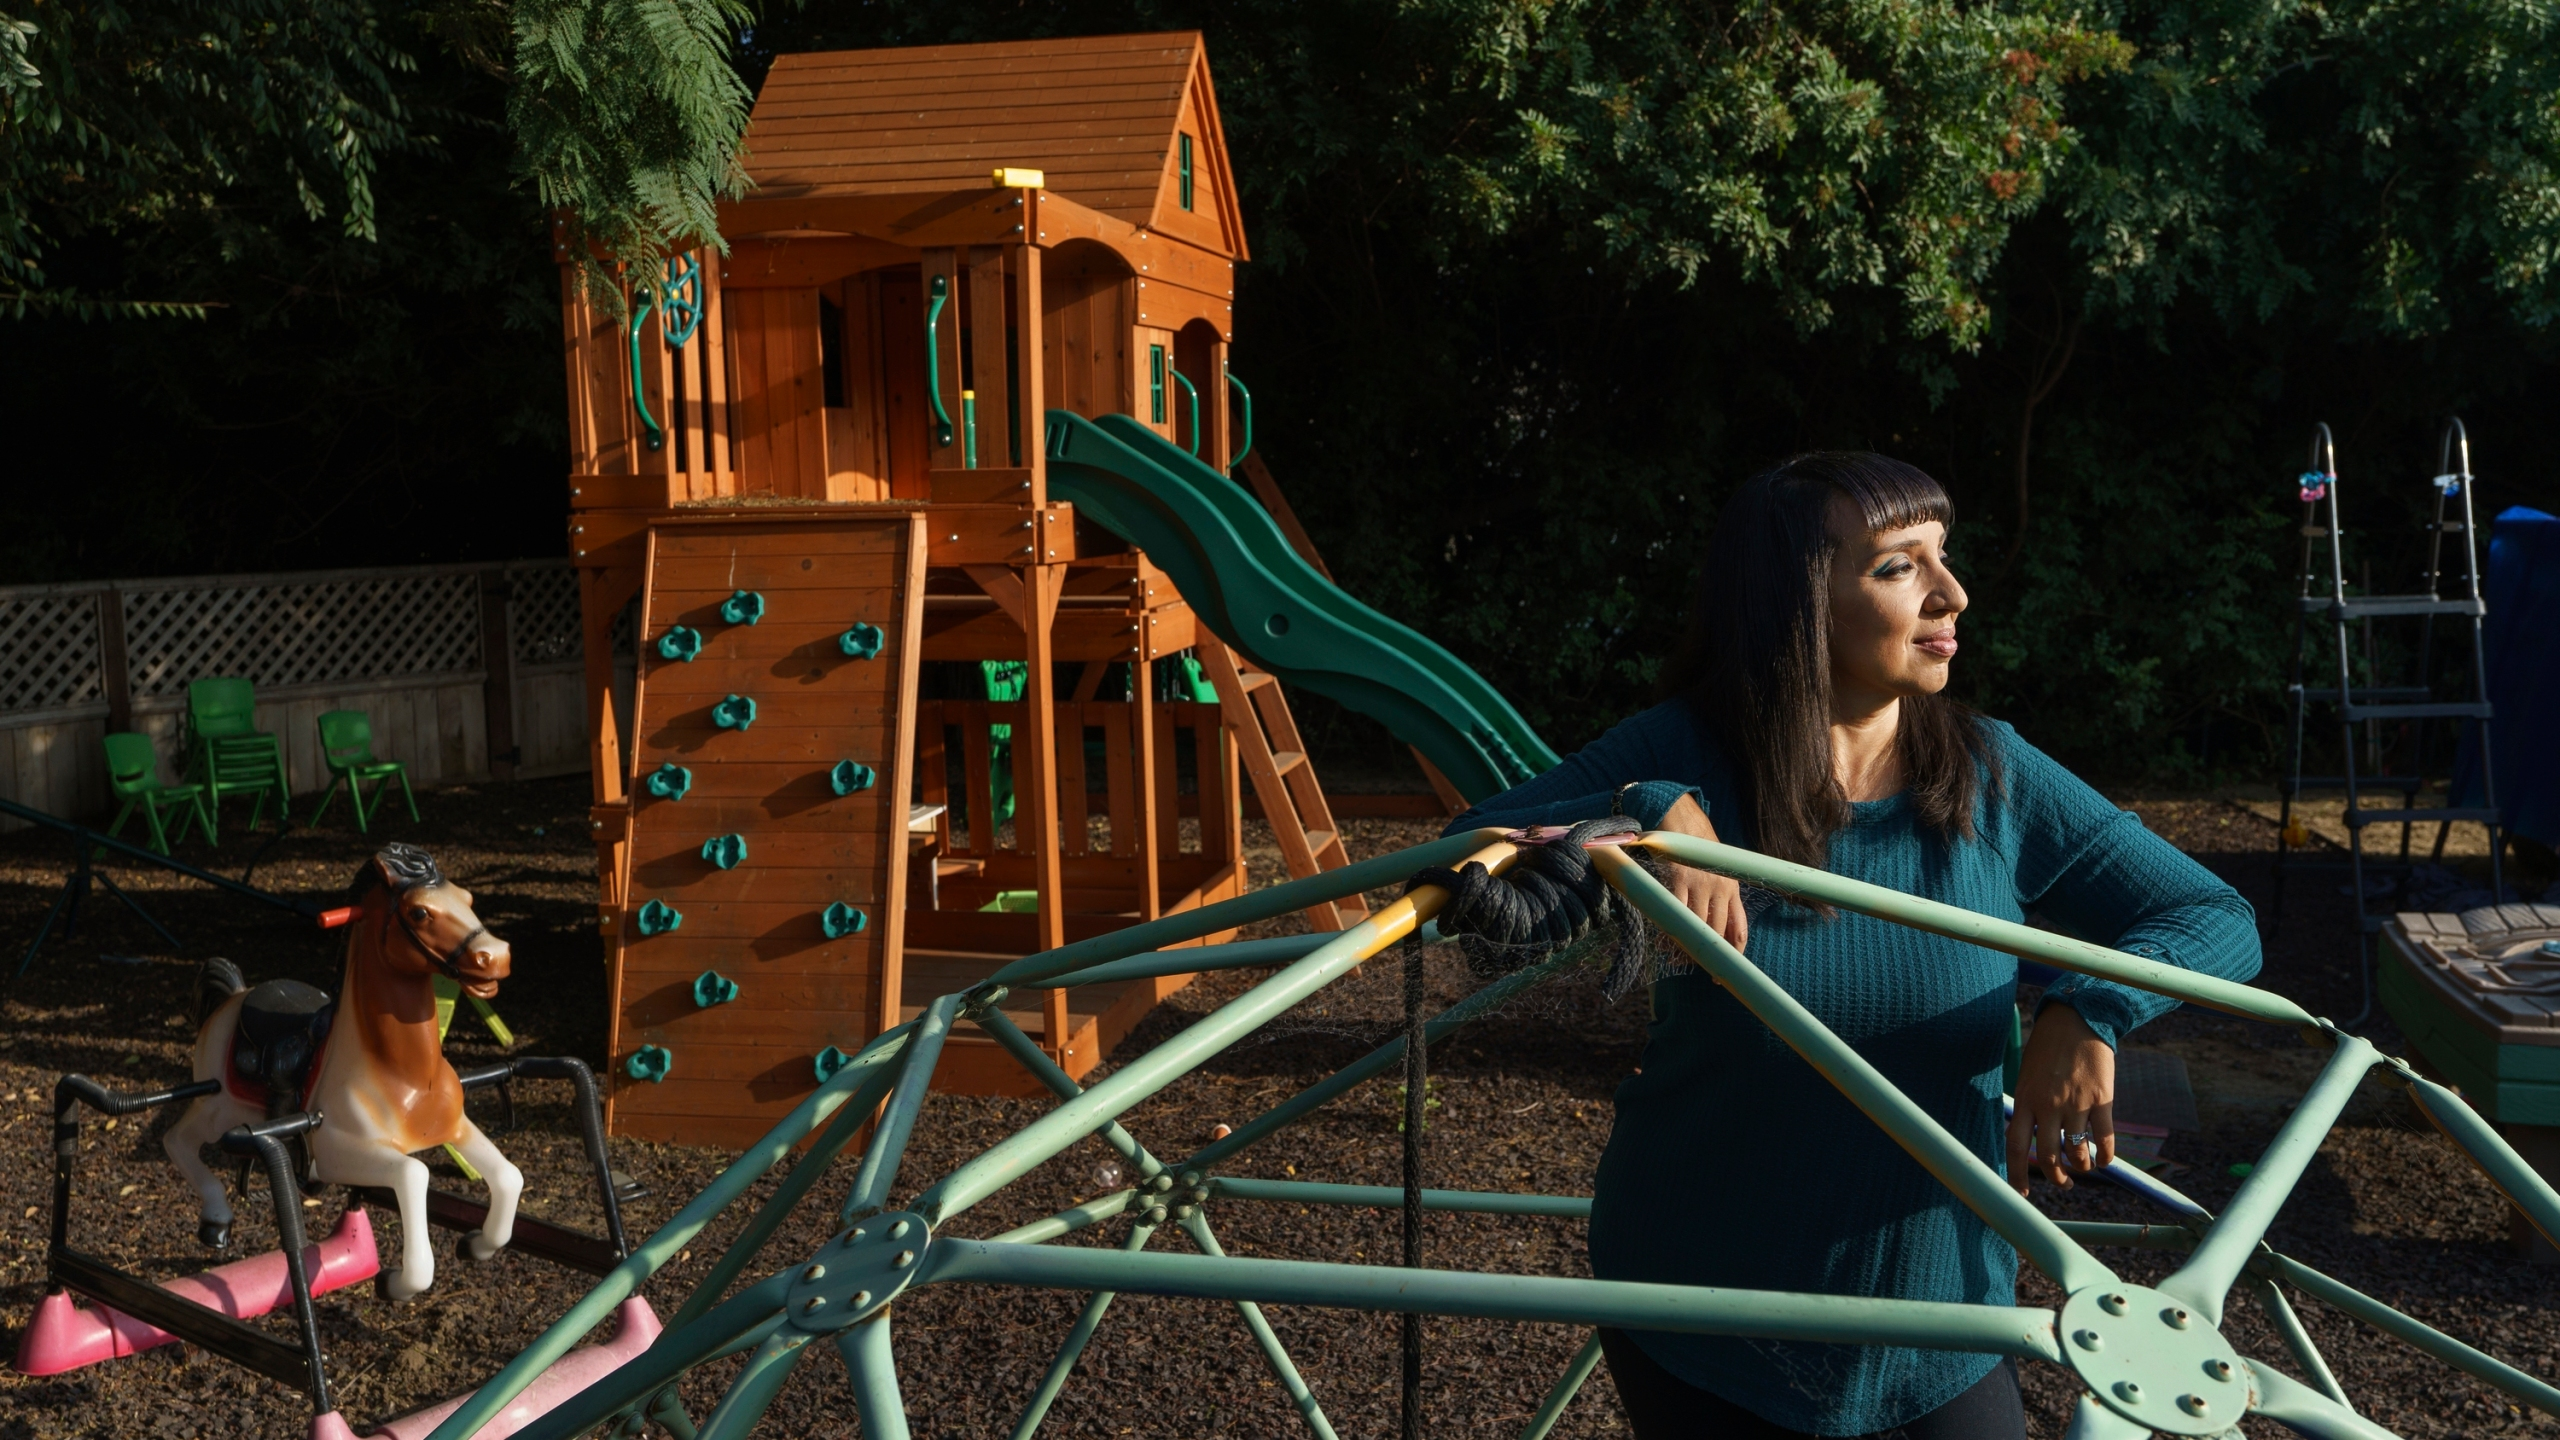 Mary De La Rosa stands inside a play structure in her home backyard, that once housed the now-closed child care program, Creative Explorers, Wednesday, Oct. 21, 2020, in Los Angeles. When De La Rosa closed her toddler and preschool program in March because of the coronavirus pandemic, she fully expected to serve the children again some day. In the end, though, Creative Explorers closed for good. The story of De La Rosa's program is being repeated across the country as the pandemic's effects ripple through child care, disproportionately affecting Black and Latino-owned centers in an industry that has long relied on providers of color. (AP Photo/Damian Dovarganes)